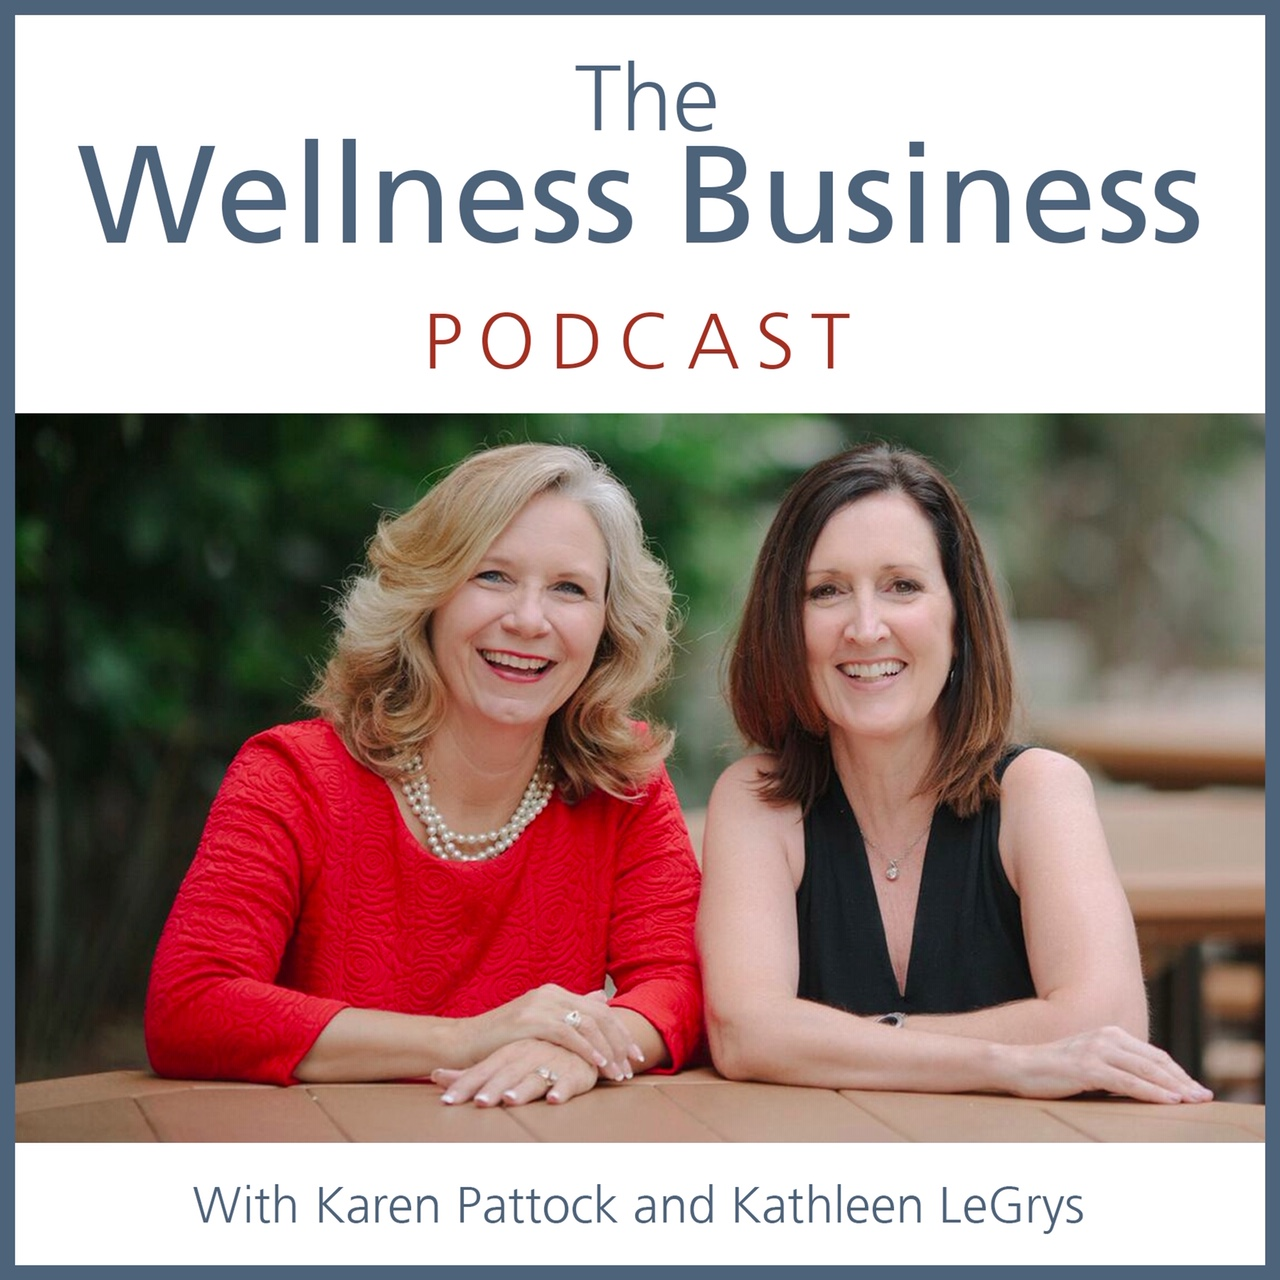 The Wellness Business Podcast show art